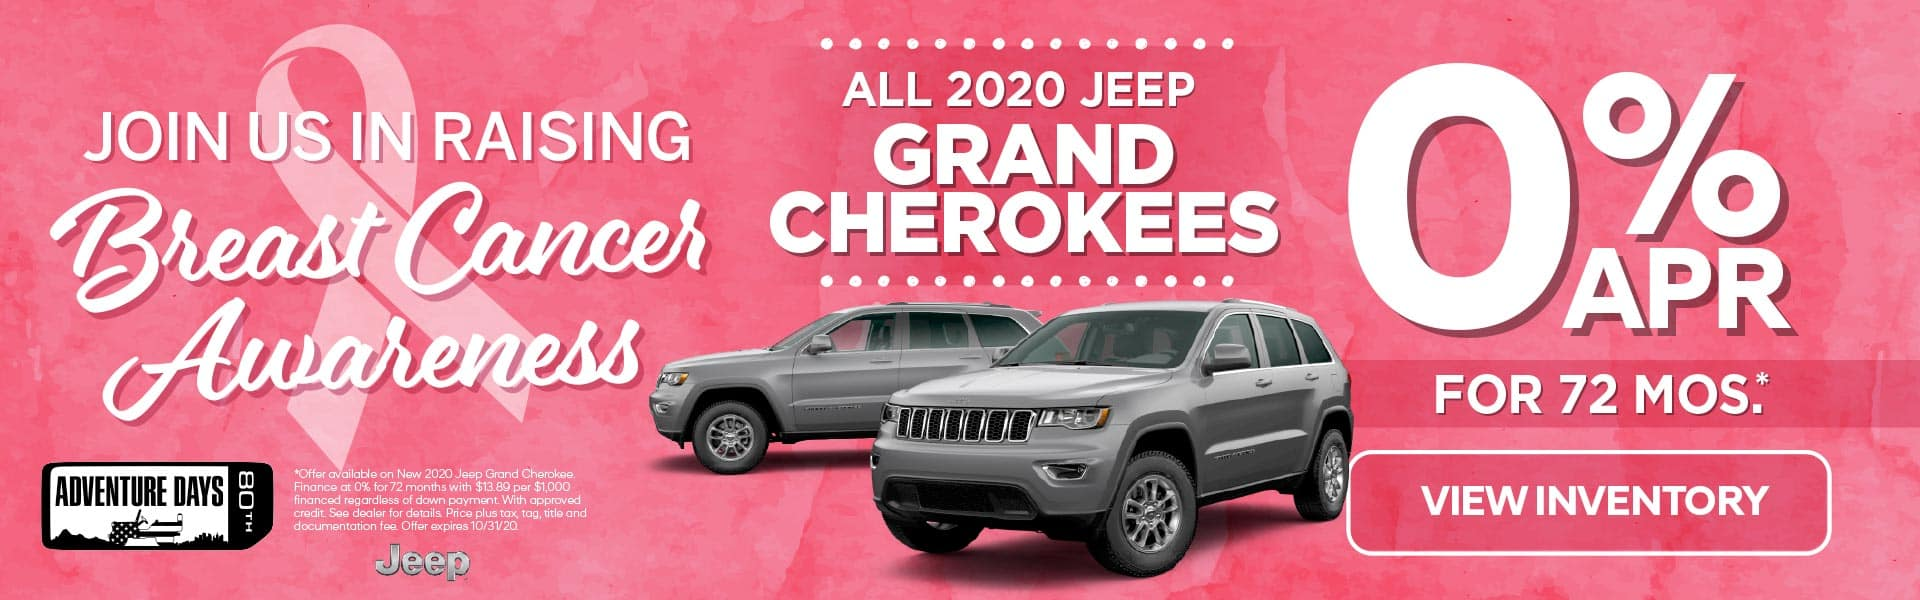 All 2020 Jeep Grand Cherokee's 0% for 72 months